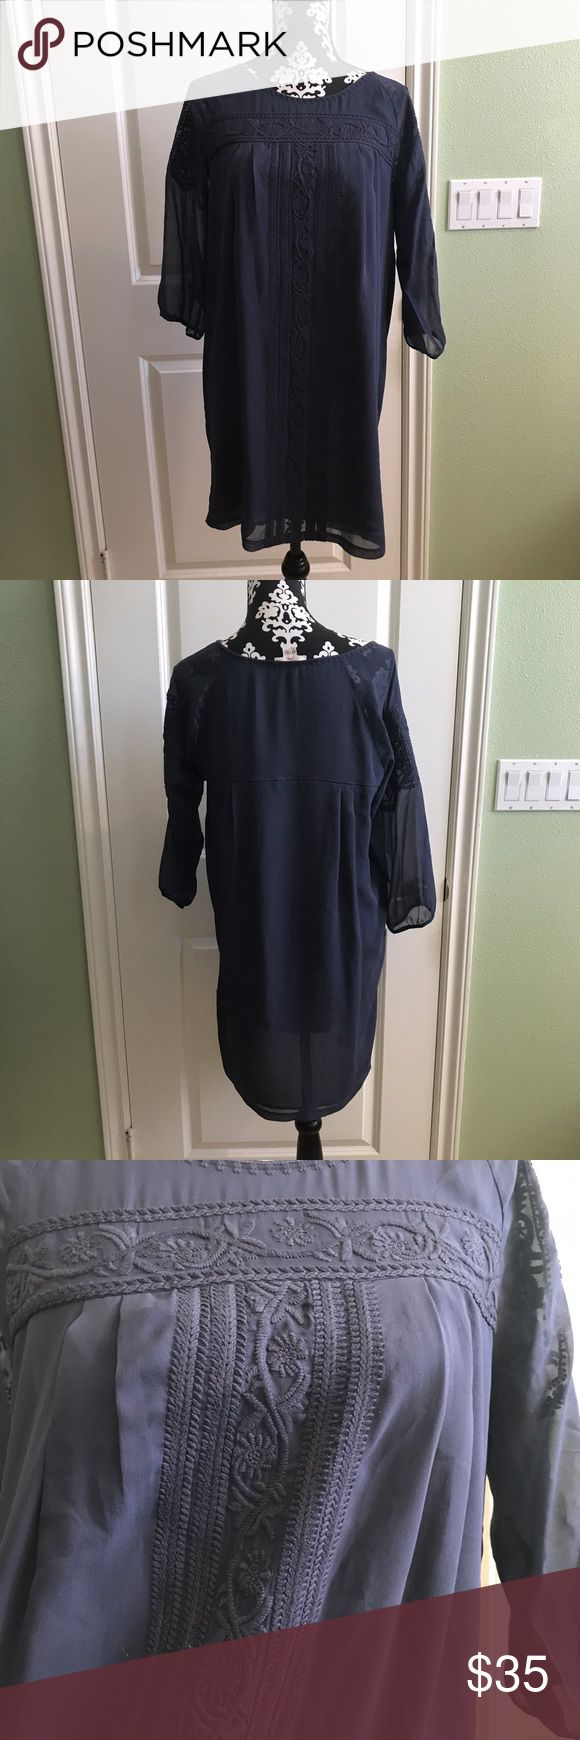 Joie Blue Boho Shift Dress Like new in great pre loved condition no rips stains tears or piling. Lightweight and comfortable Joie Dresses Midi